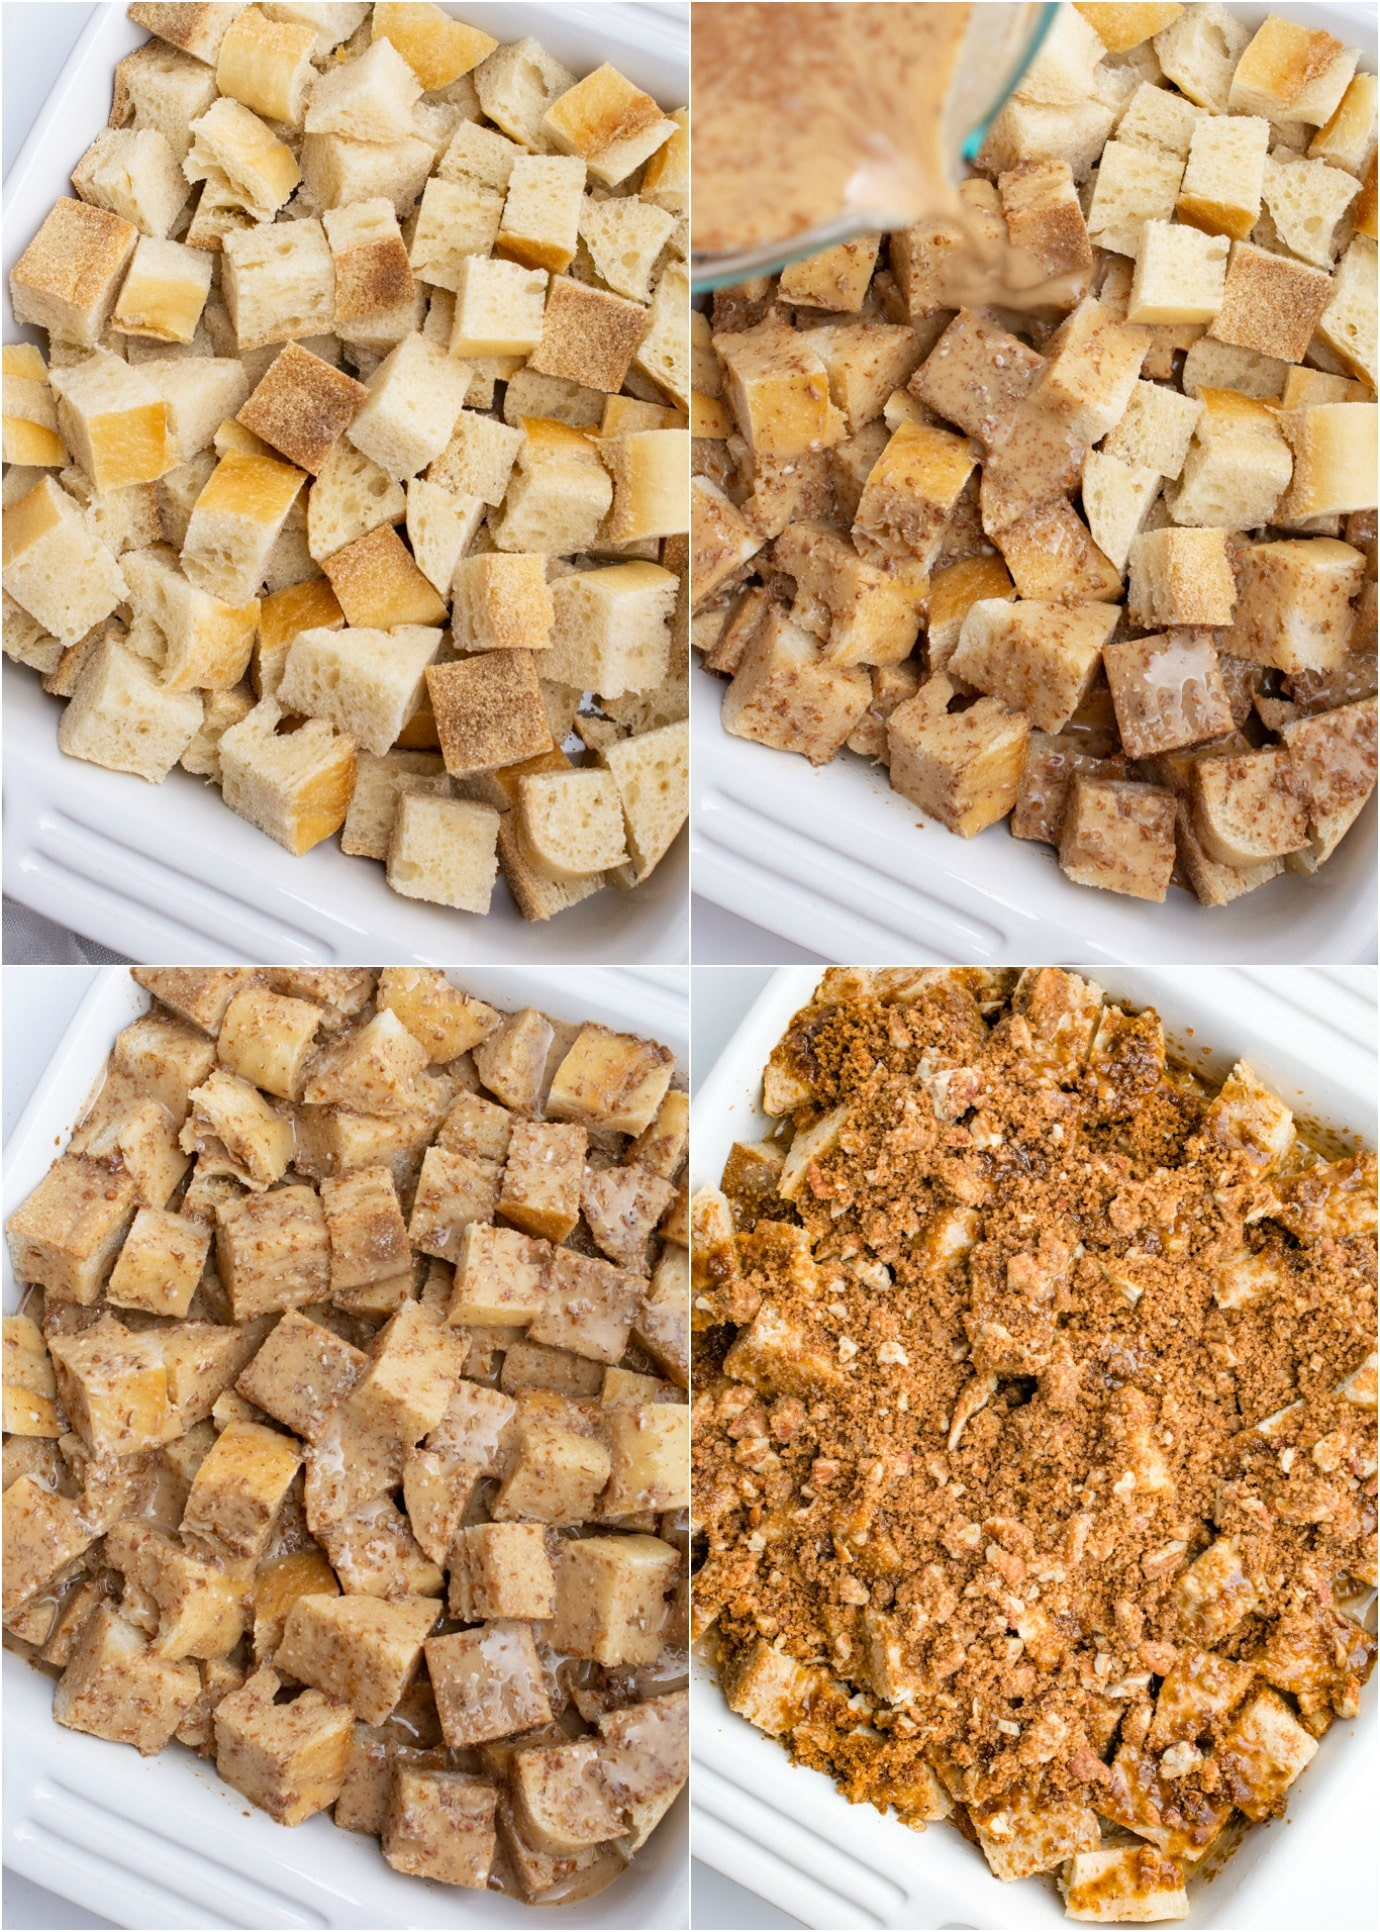 Vegan french toast casserole process steps.